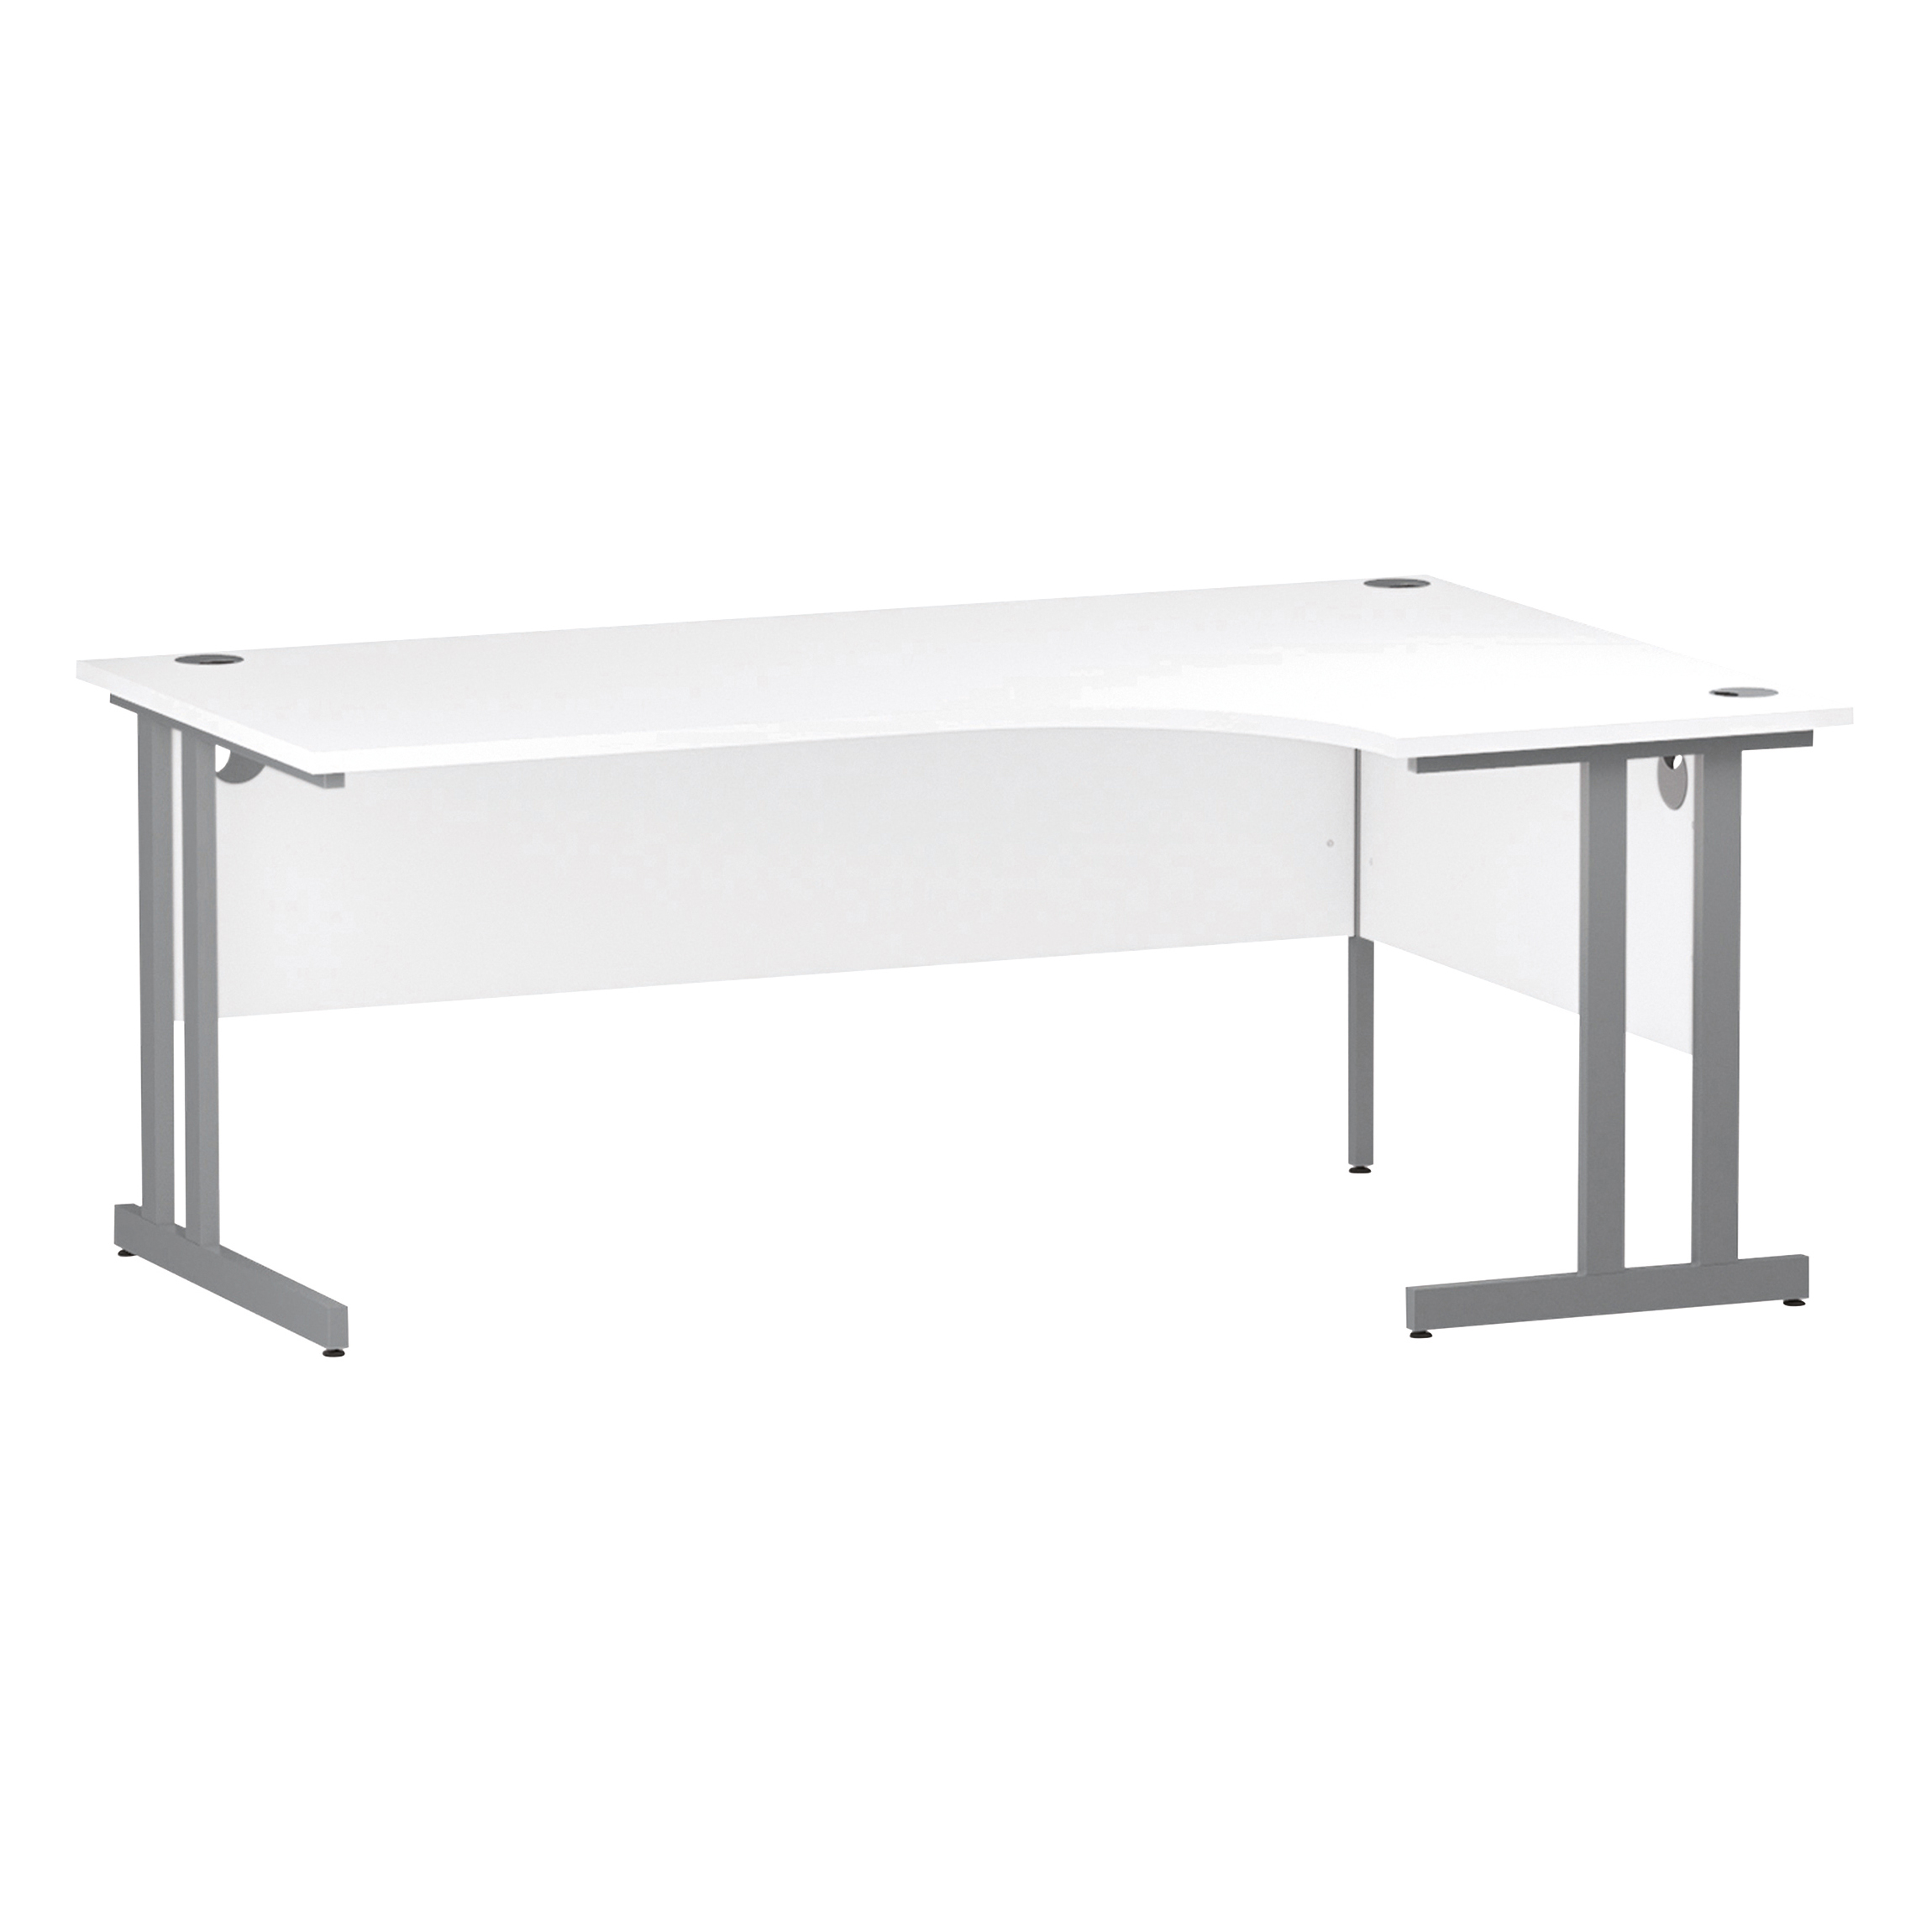 Trexus Radial Desk Right Hand Silver Cantilever Leg 1800mm White Ref I000324